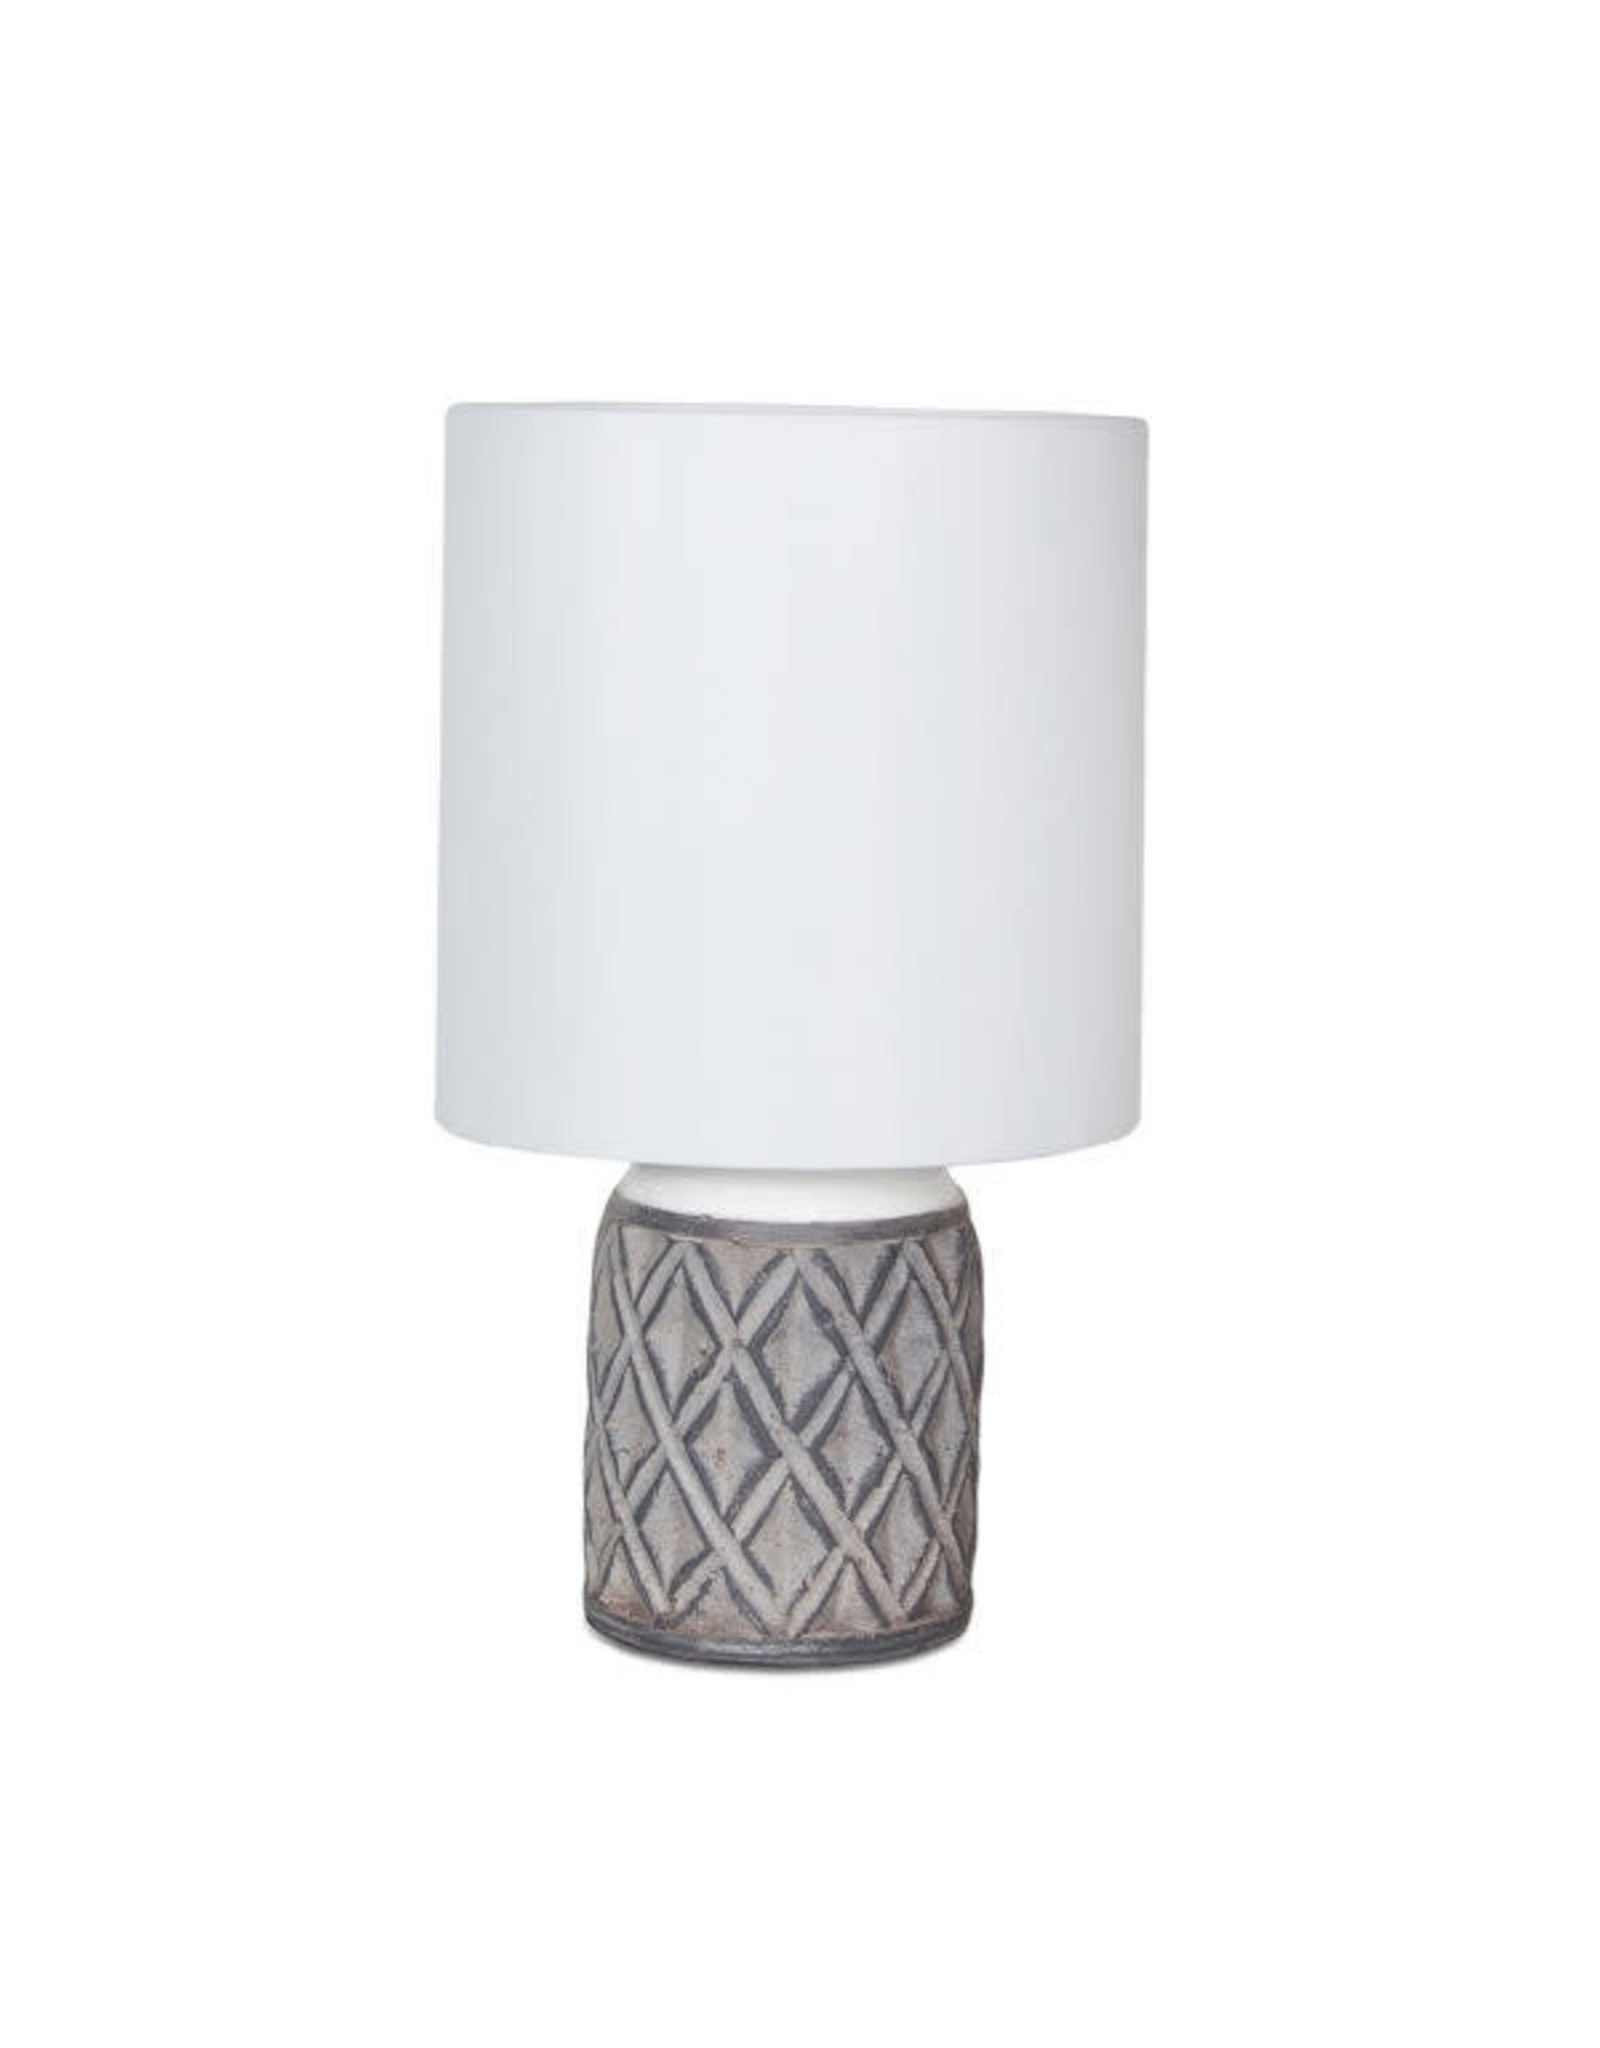 TCE Leeds TerracottaTable Lamp Small